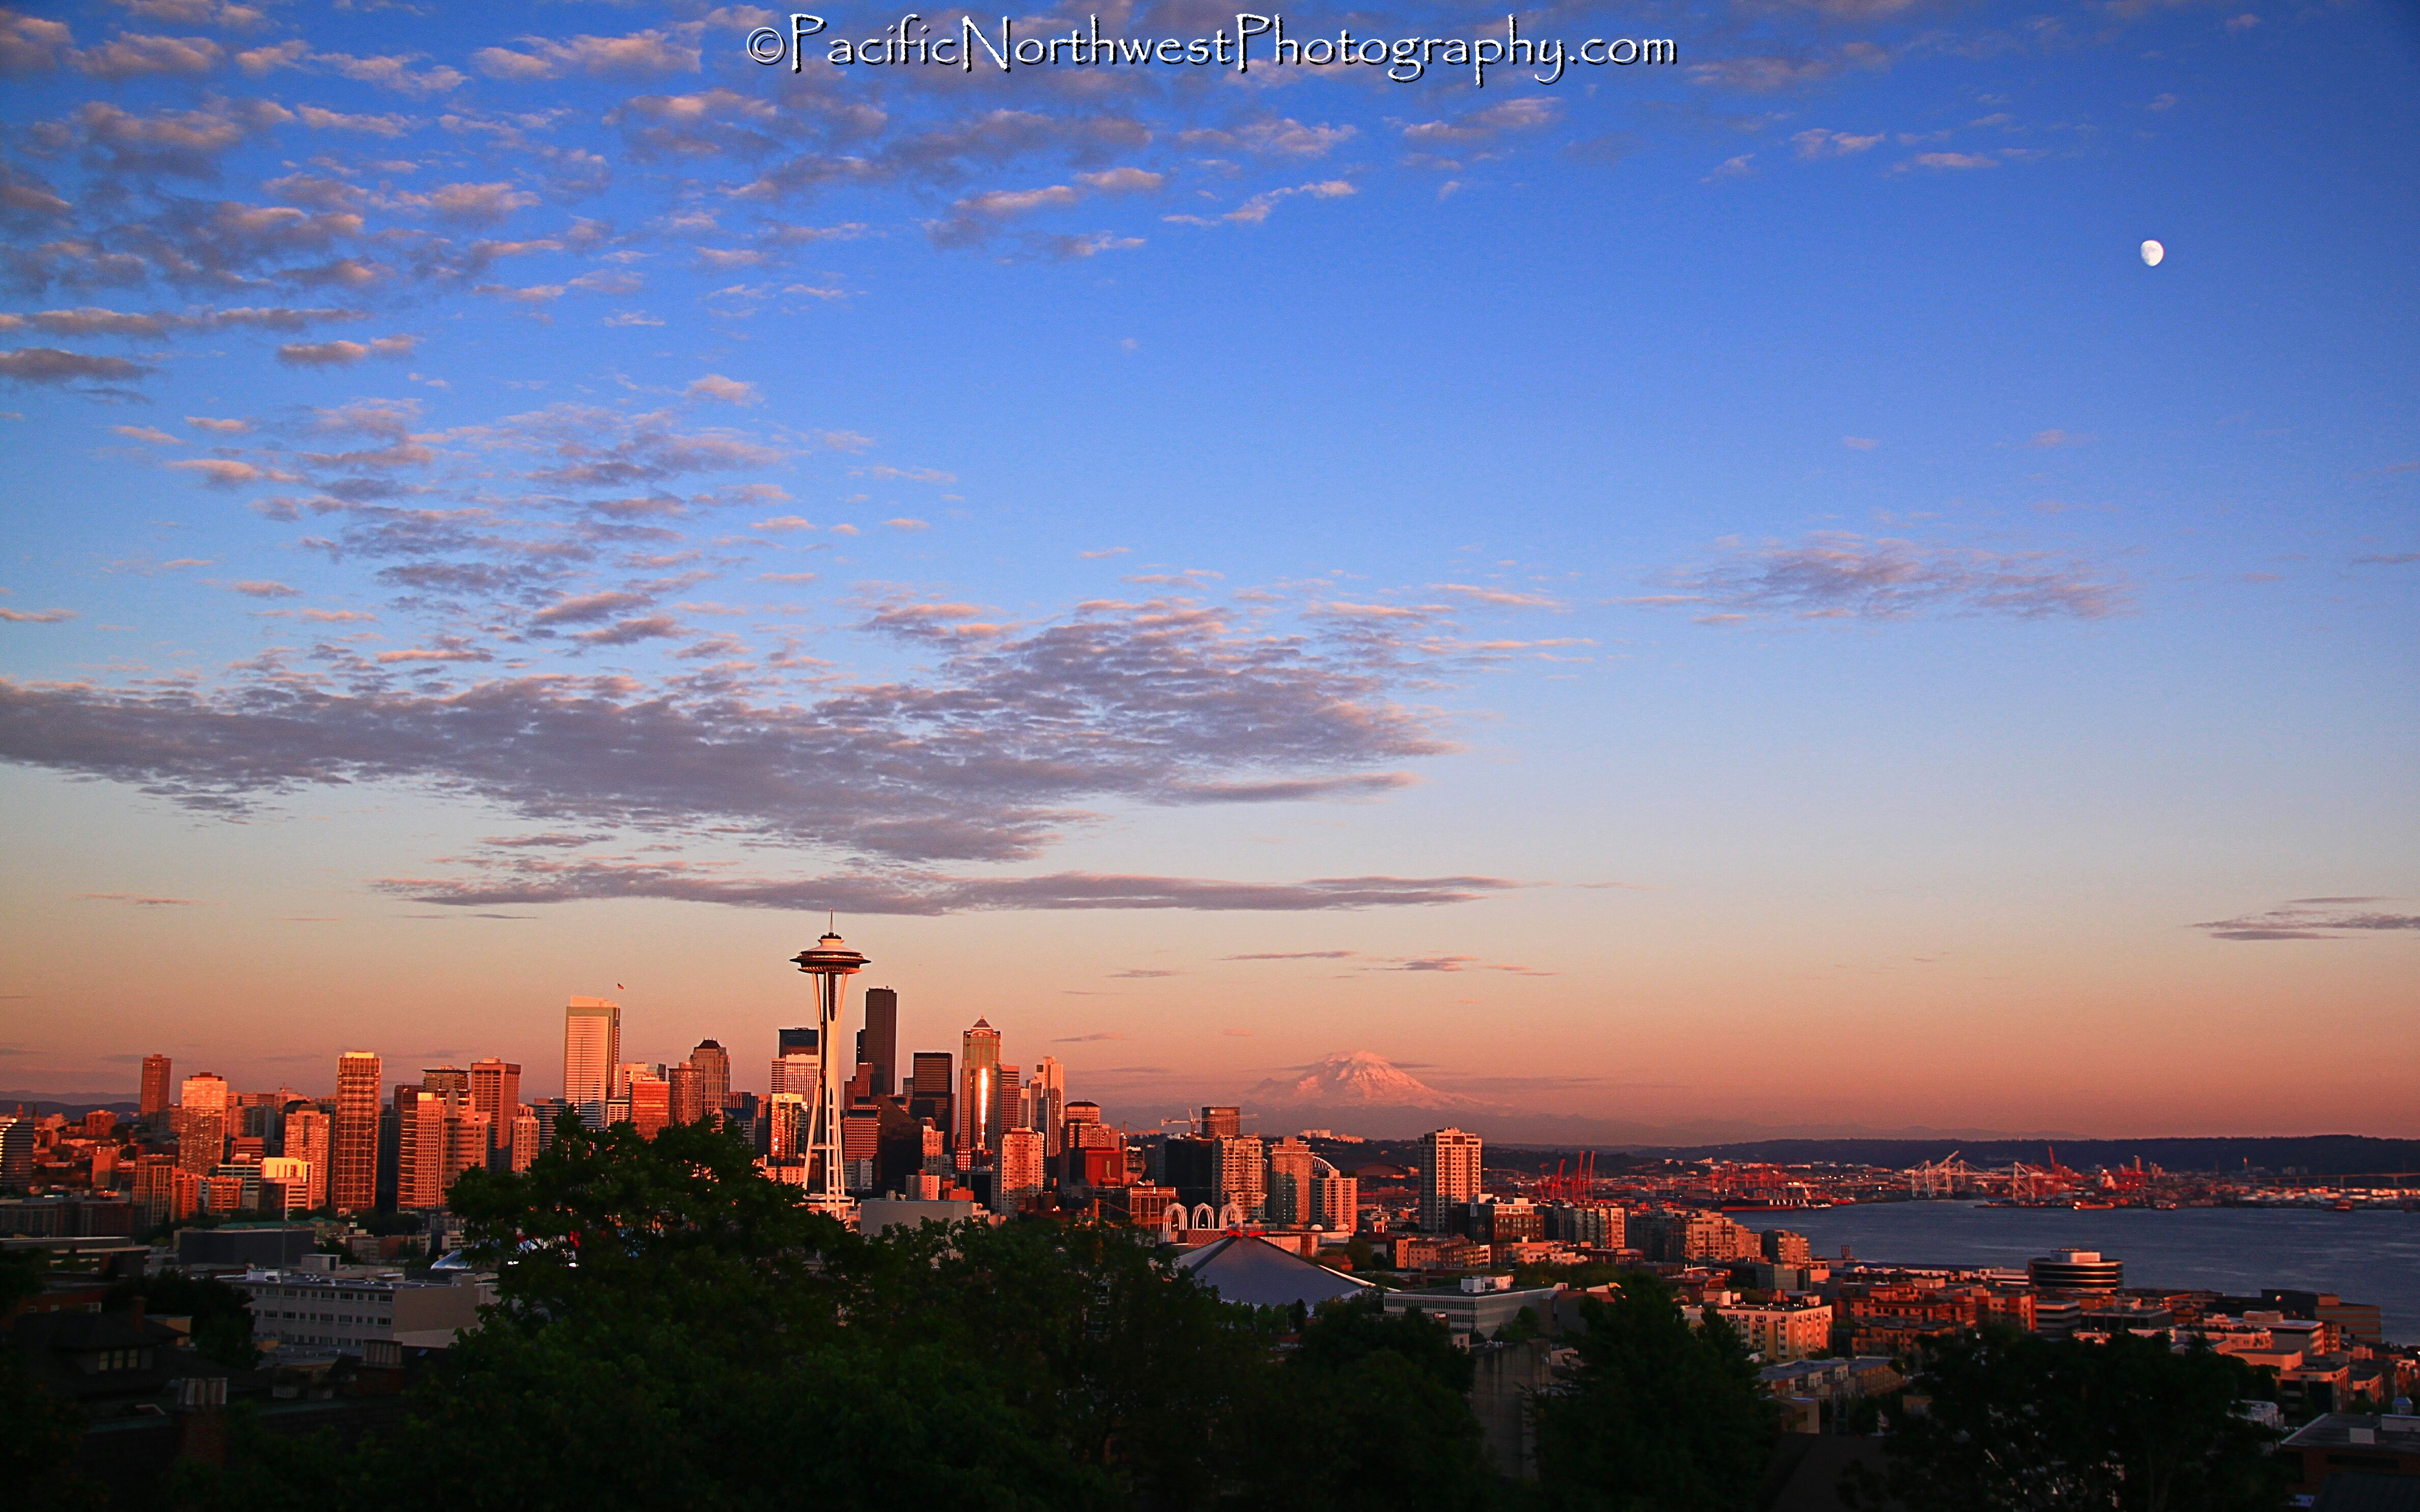 Seattle just before sunset